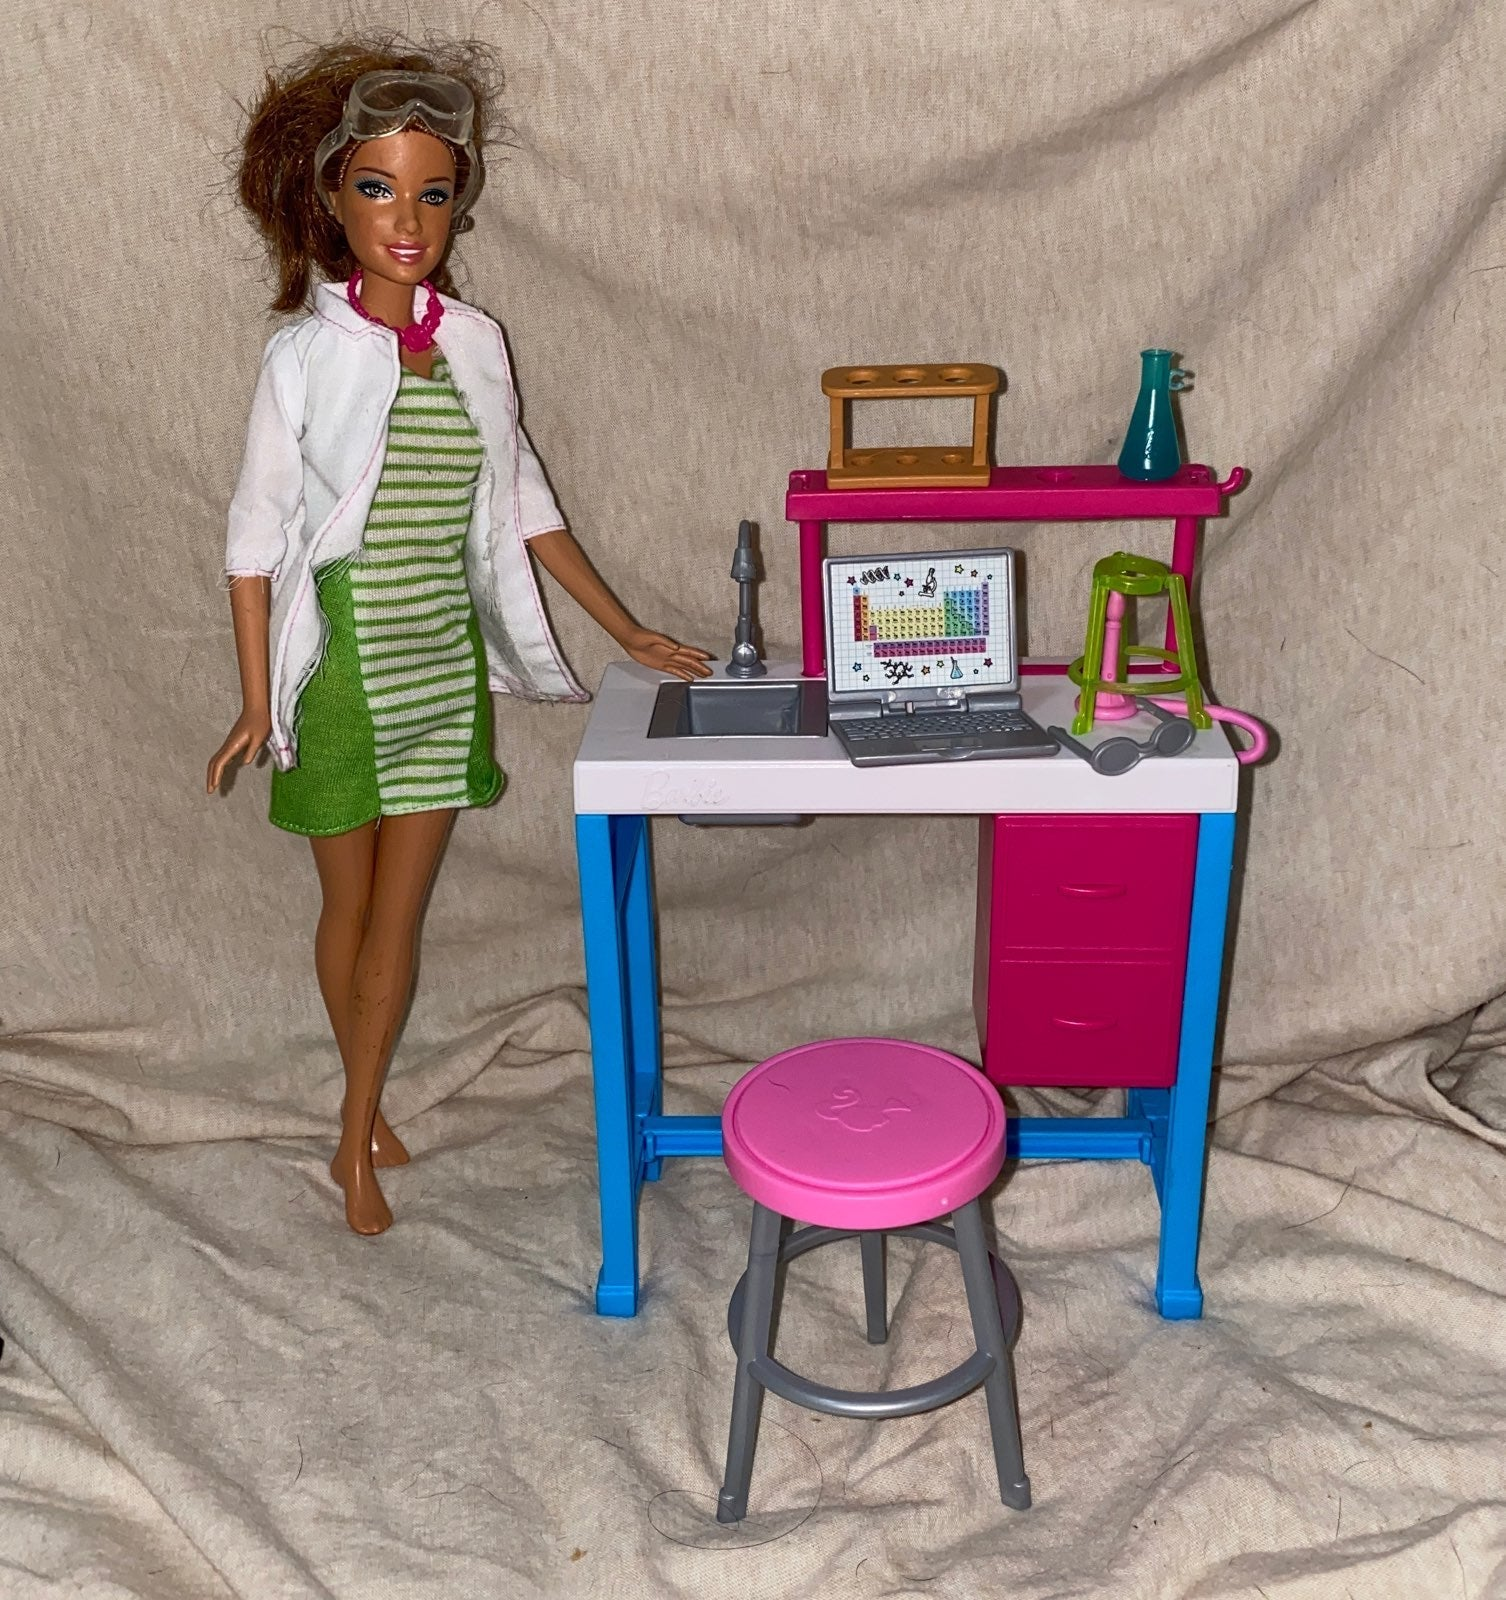 Barbie Mattel Science Lab Playset and do